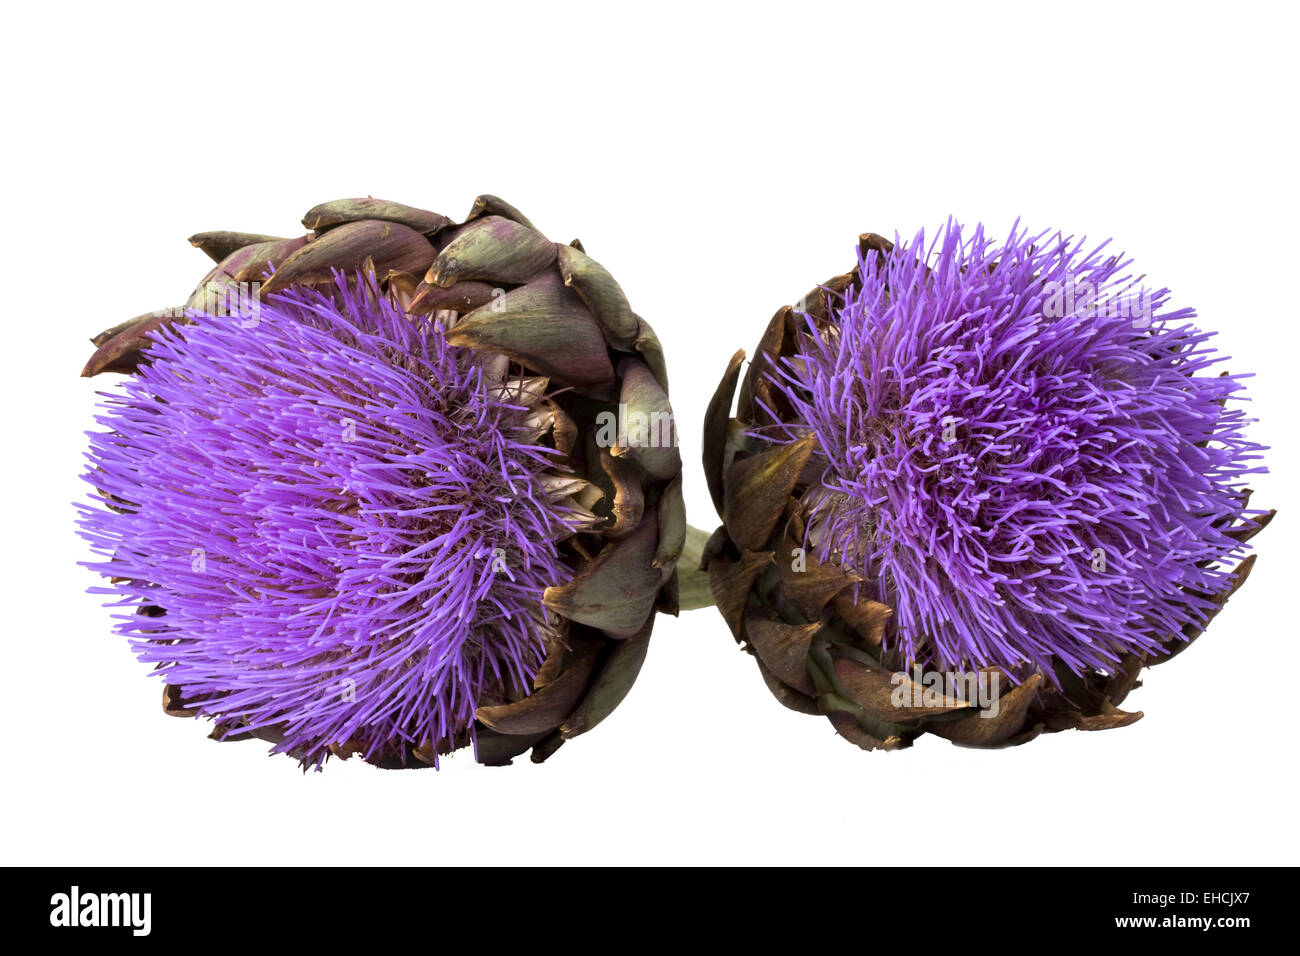 artichoke in bloom on white background - Stock Image